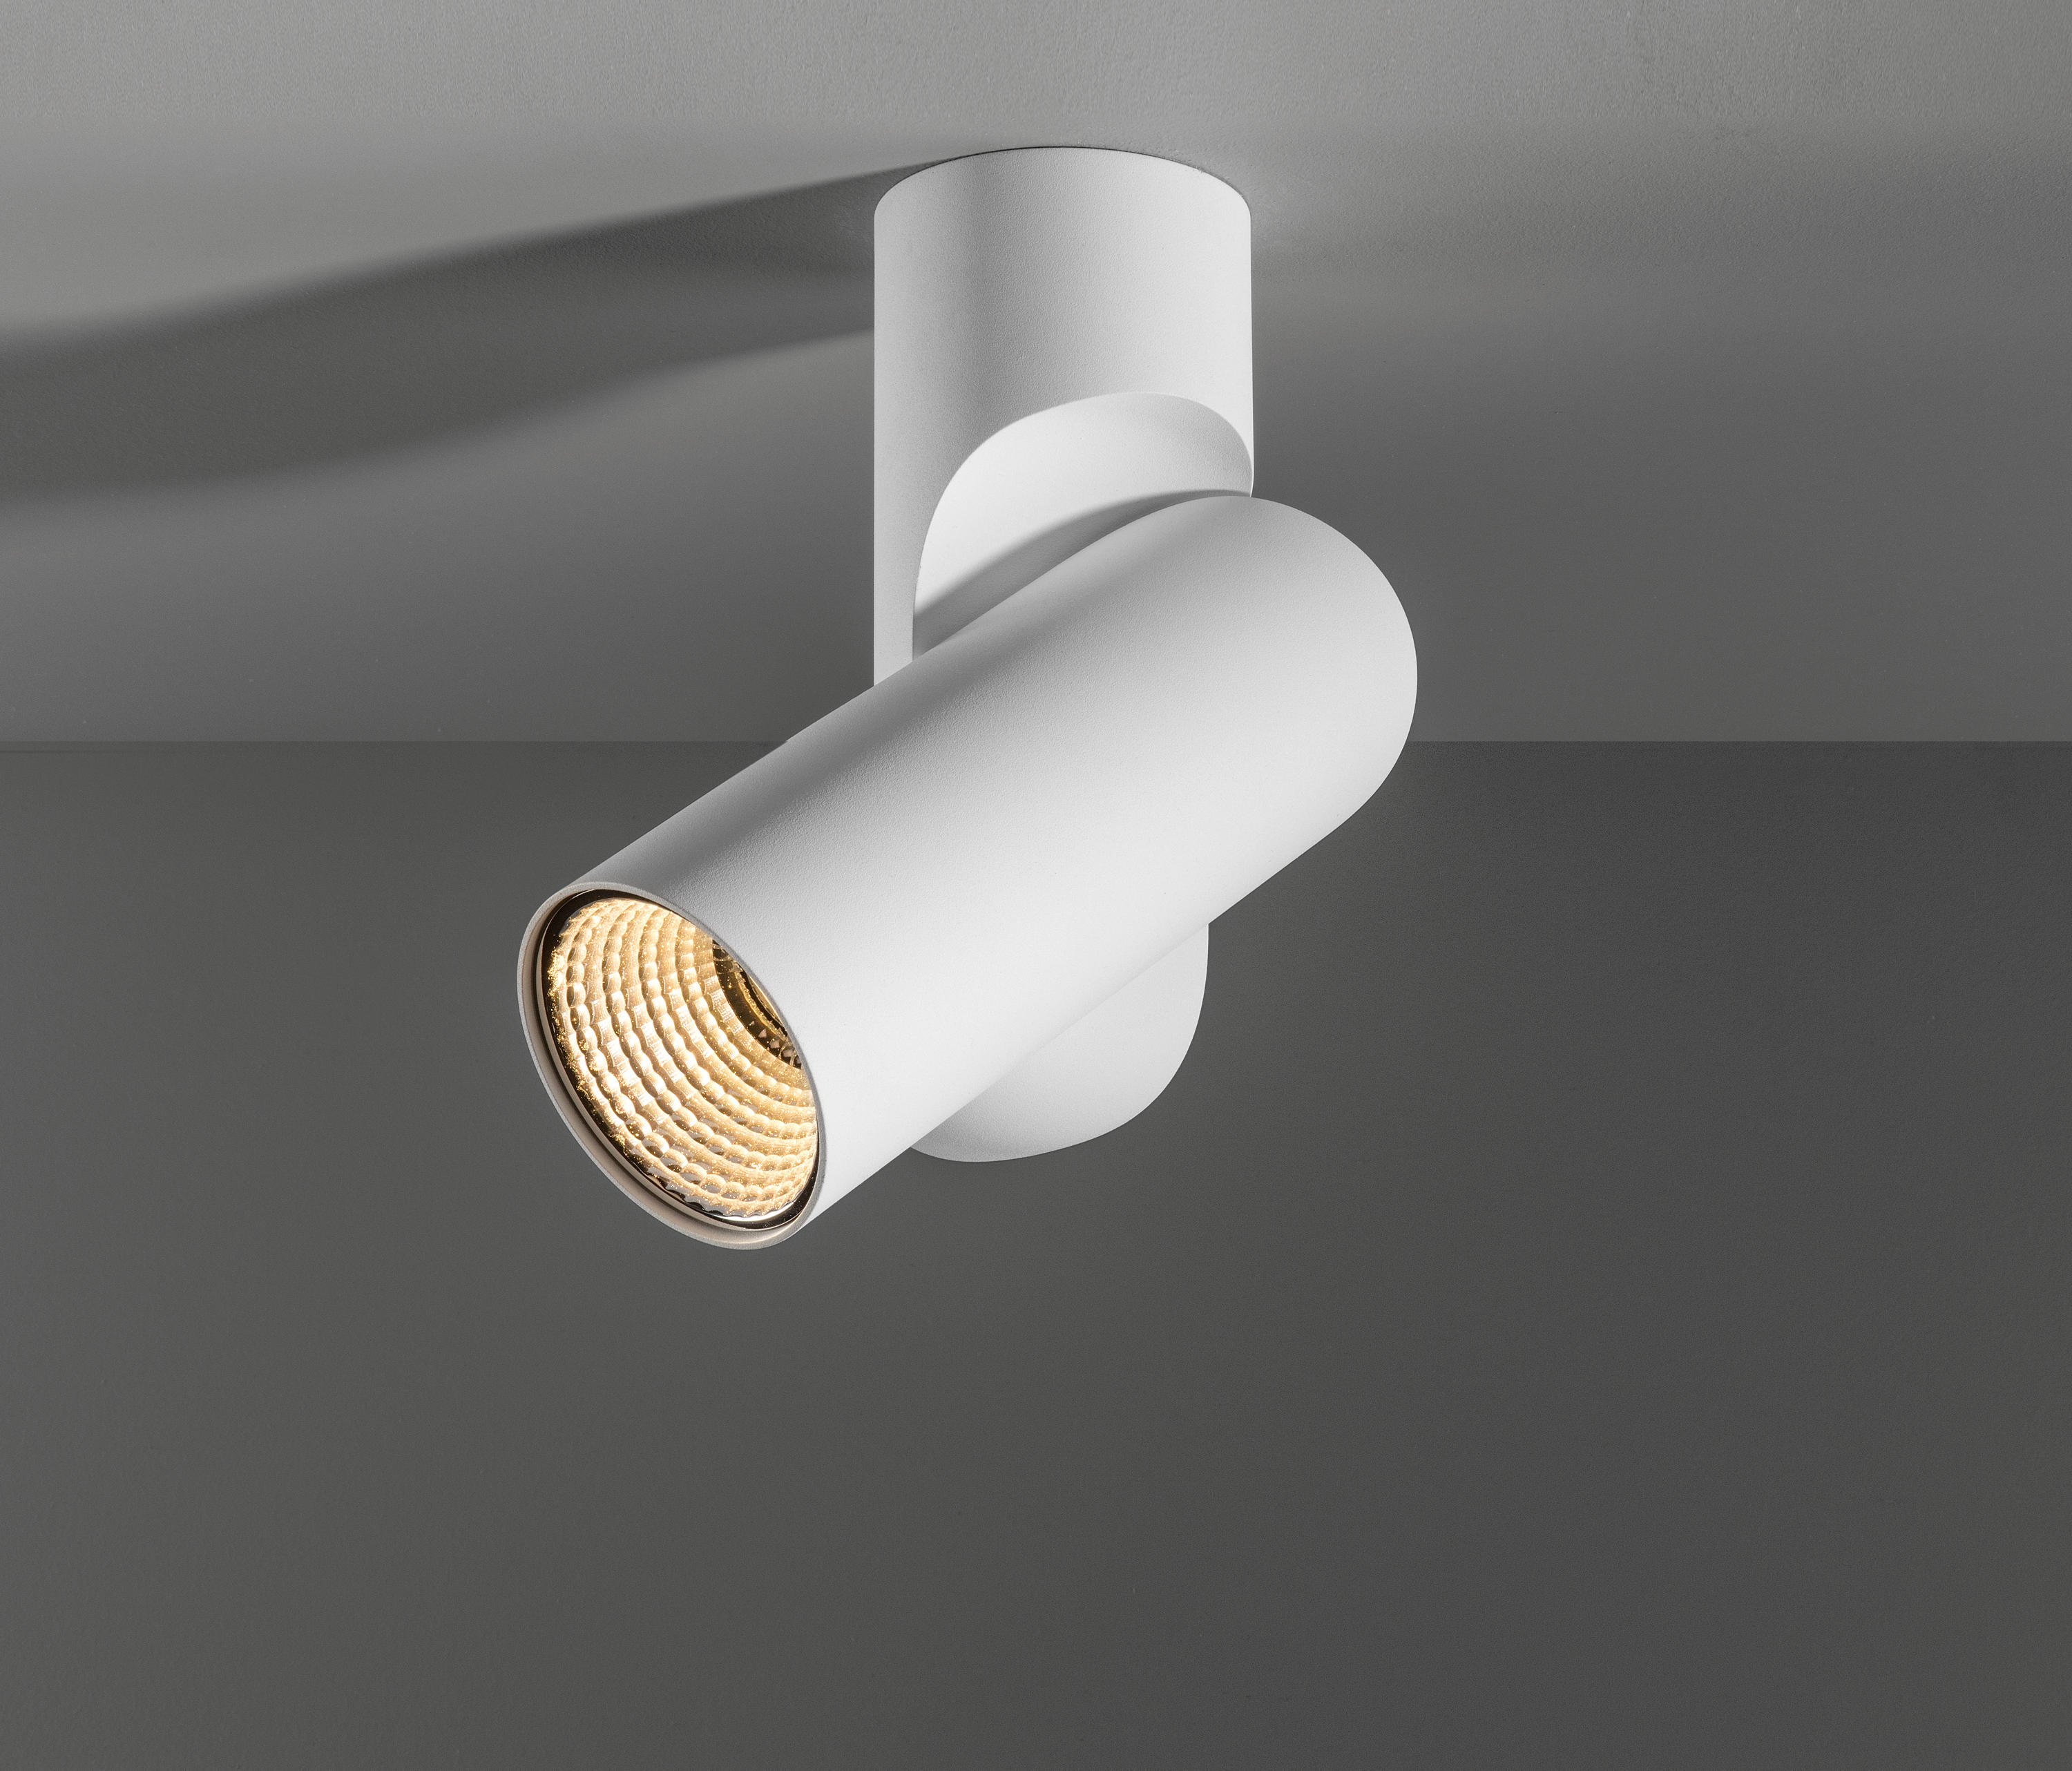 SQUBE ON BASE 1.0 - Ceiling-mounted spotlights from Wever & Ducré ...